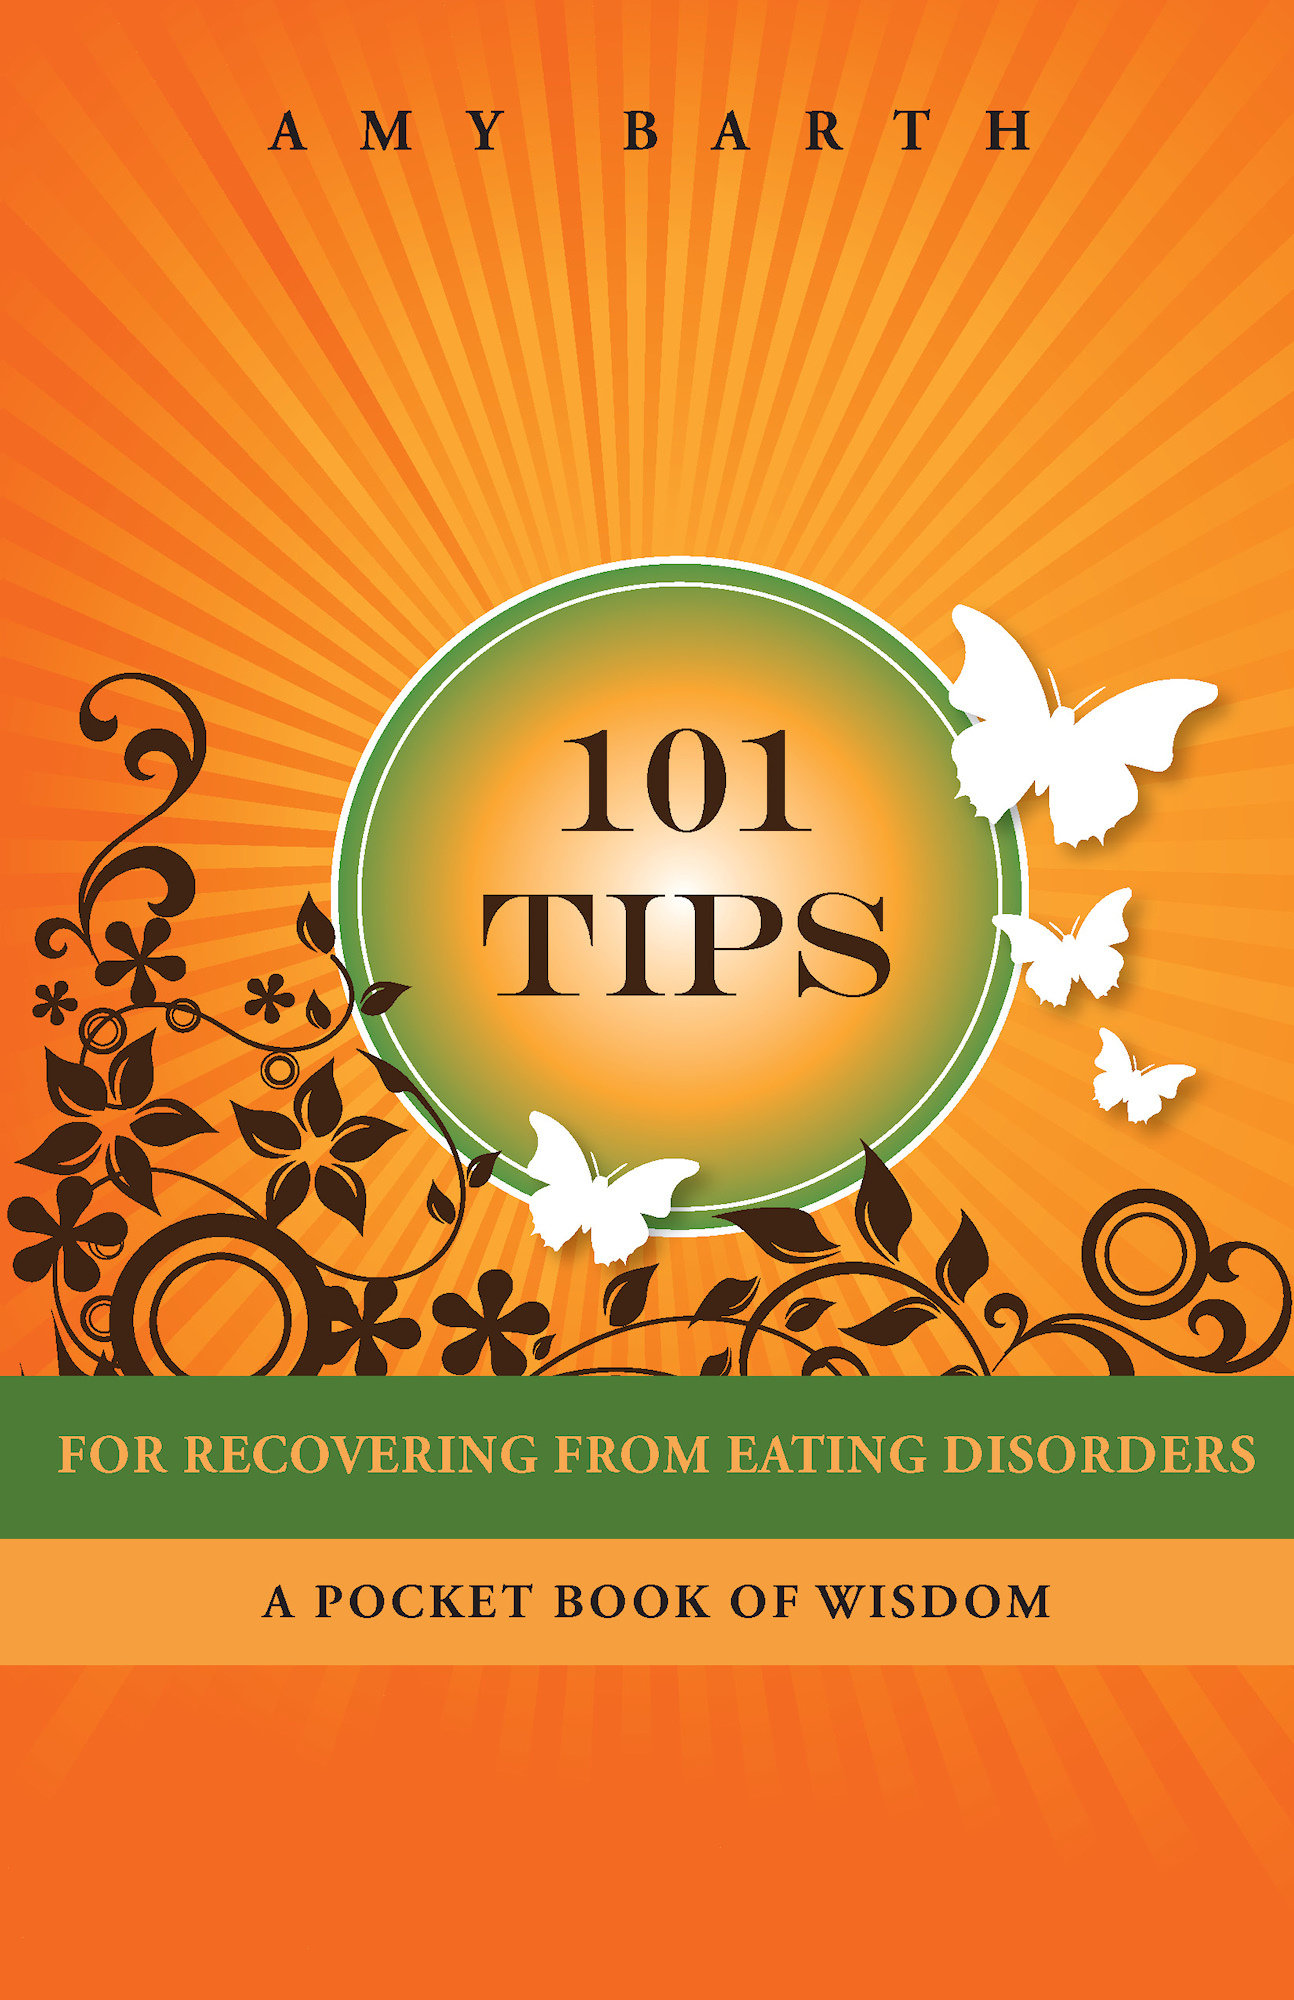 101 Tips For Recovering From Eating Disorders 978-1-61599-001-6